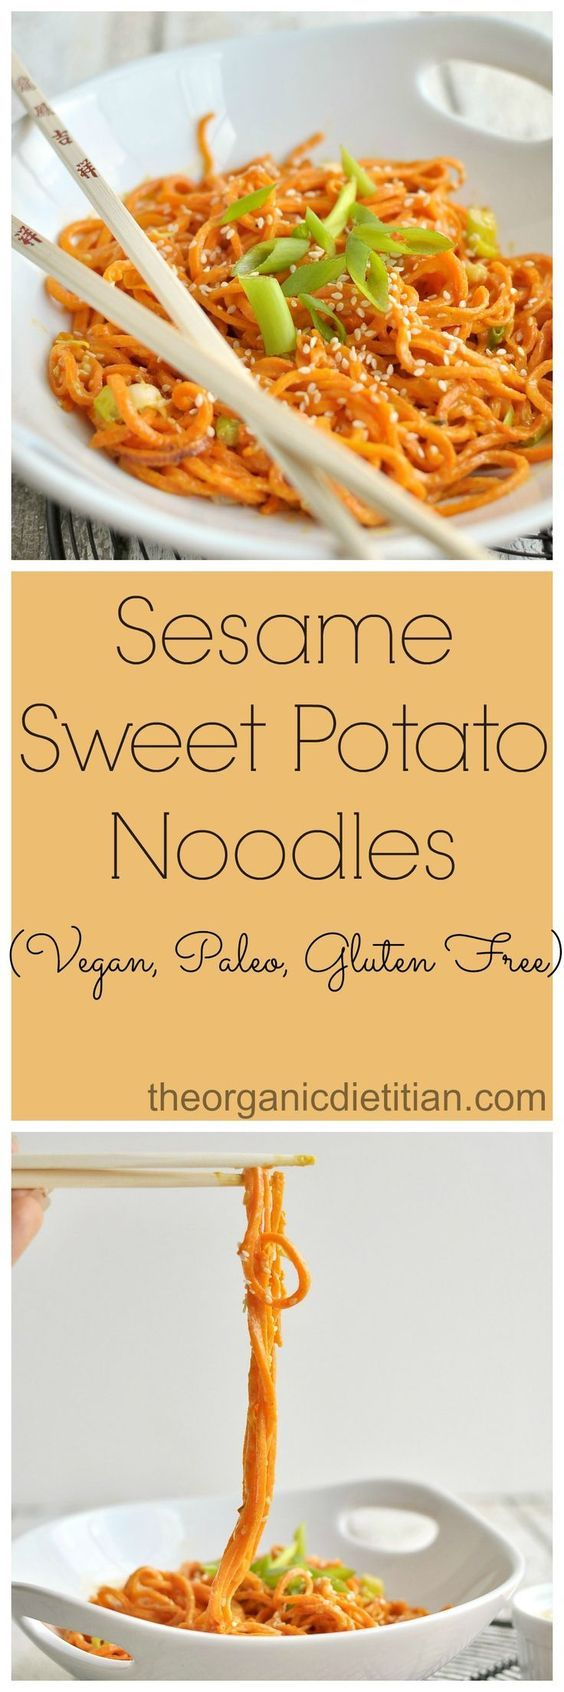 Sesame Sweet Potato Noodles using Spirilizer #vegan #glutenfree #paleo